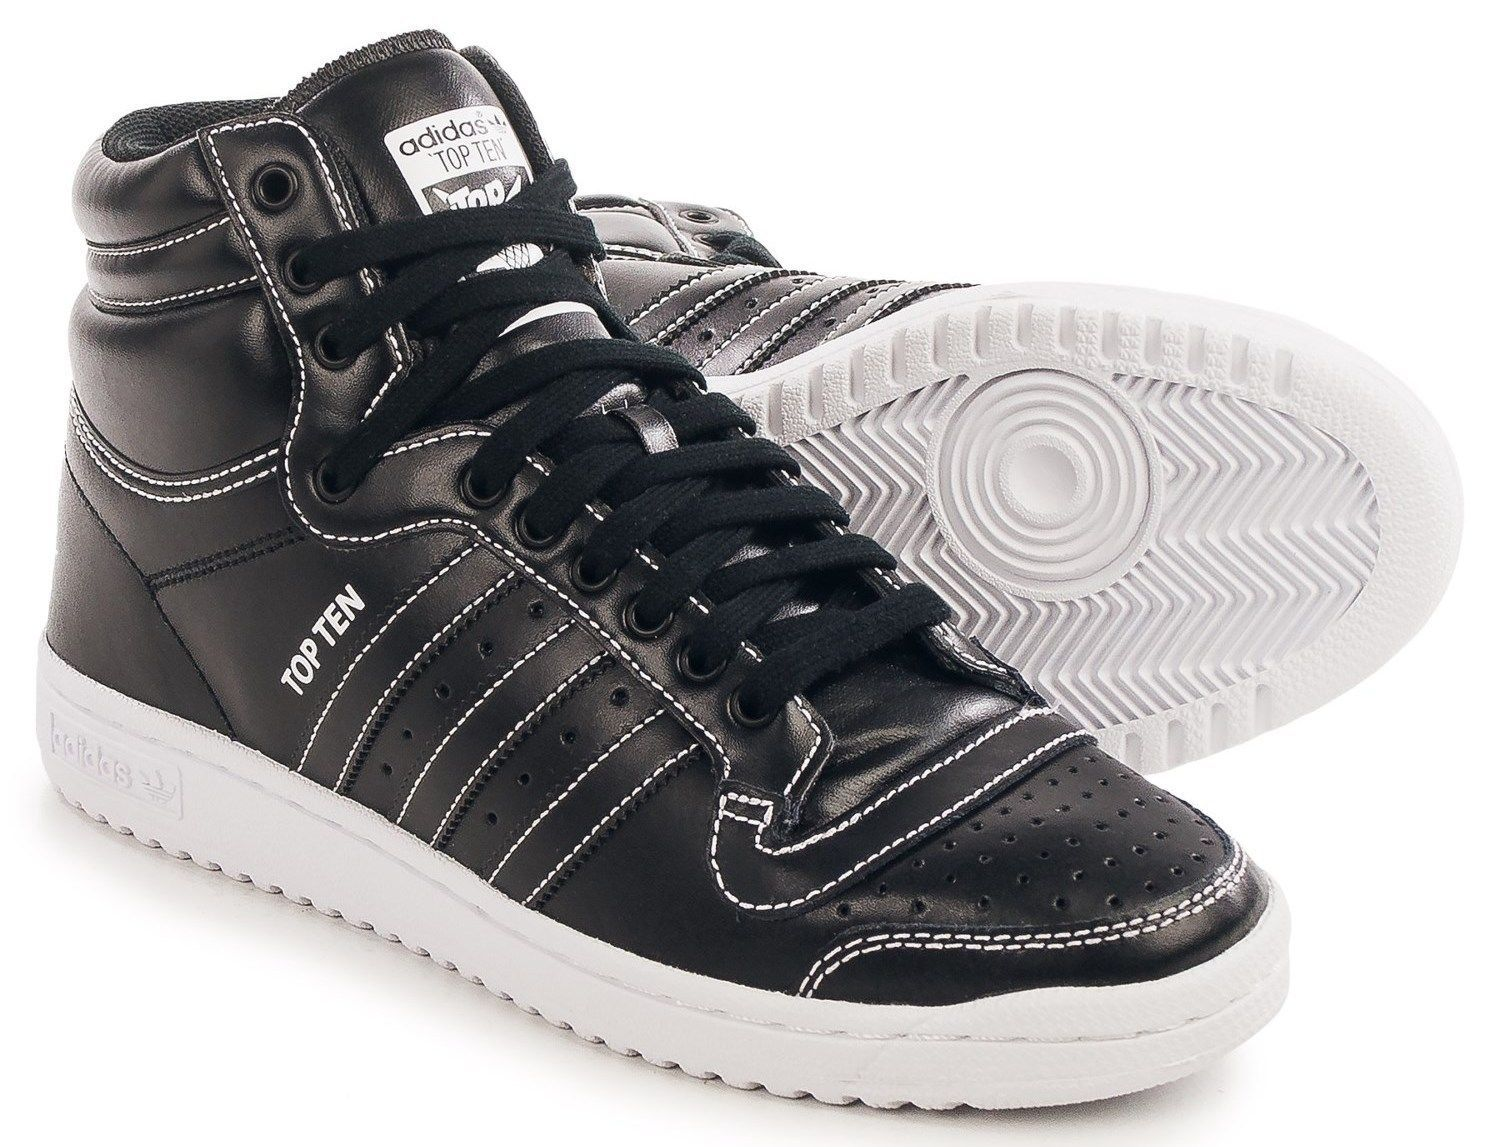 ADIDAS TOP TEN HI MENS BASKETBALL SHOE BLACK WHITE AUTHENTIC NEW IN BOX US SZ